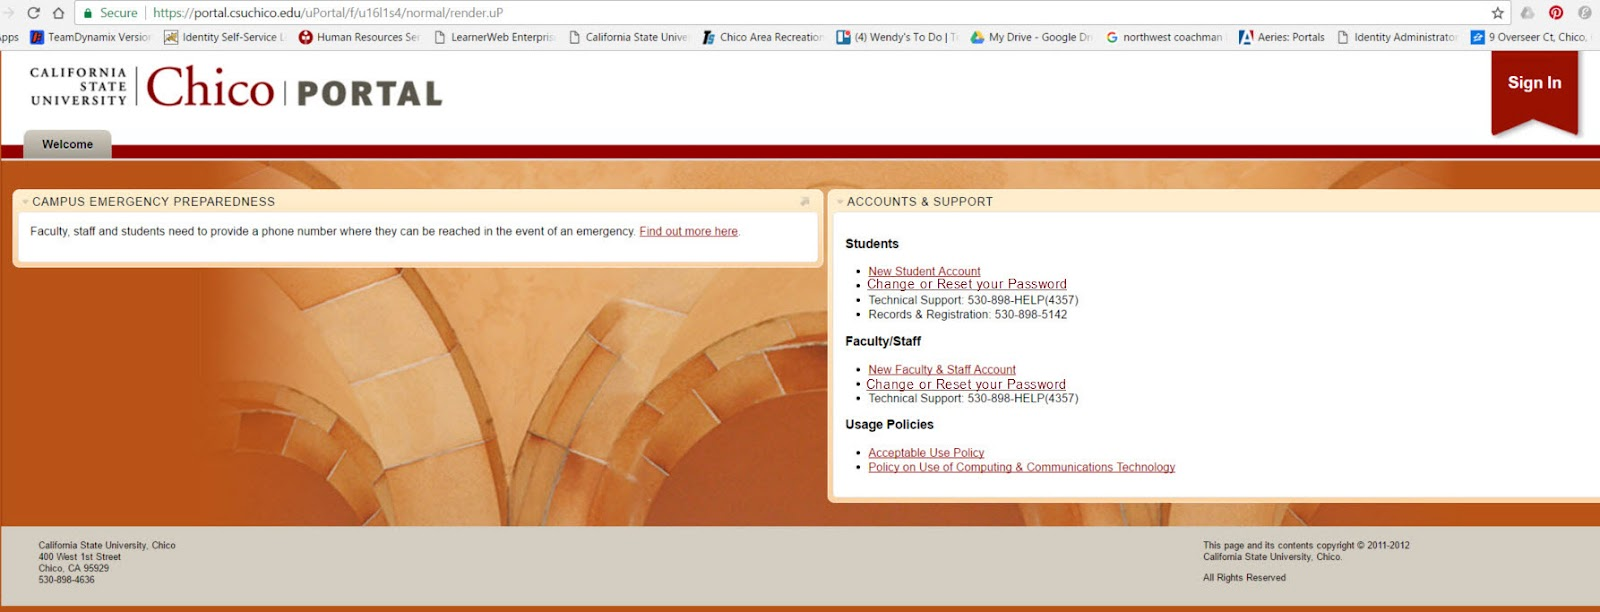 csu chico portal Article - Claiming your new Chico Sta...